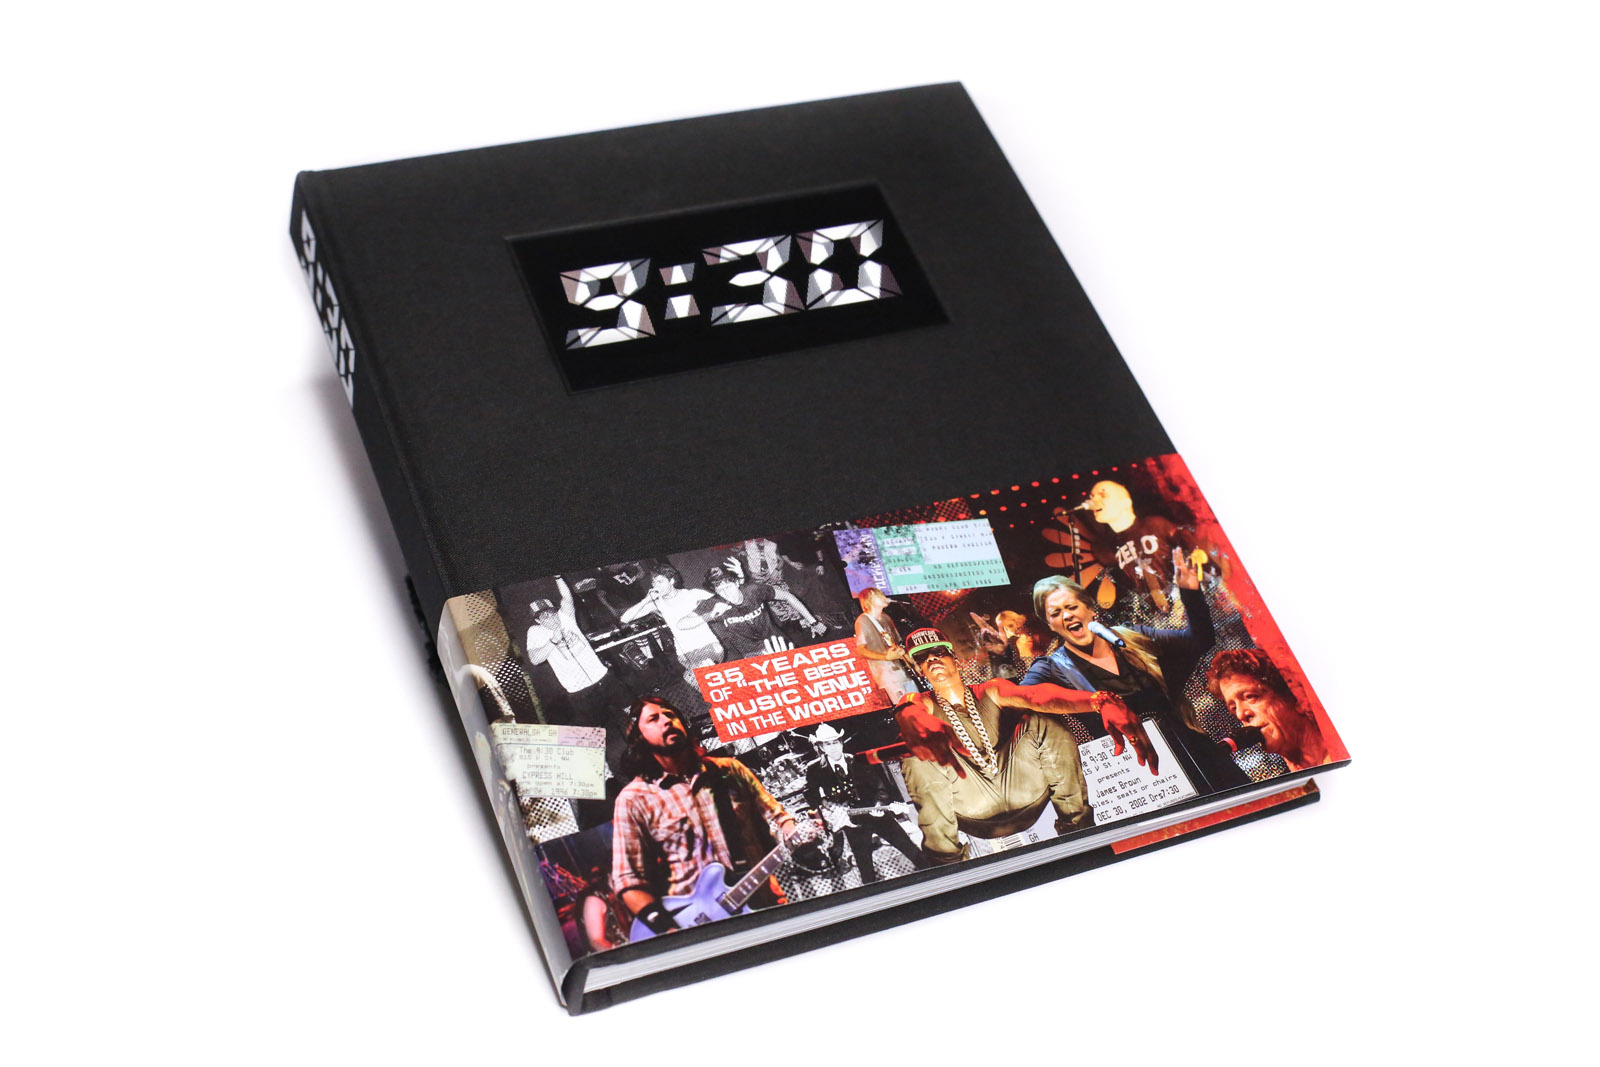 The front of the new book about the 9:30 Club's history. Copies are now available for pre-order. (Courtesy 9:30 Club)